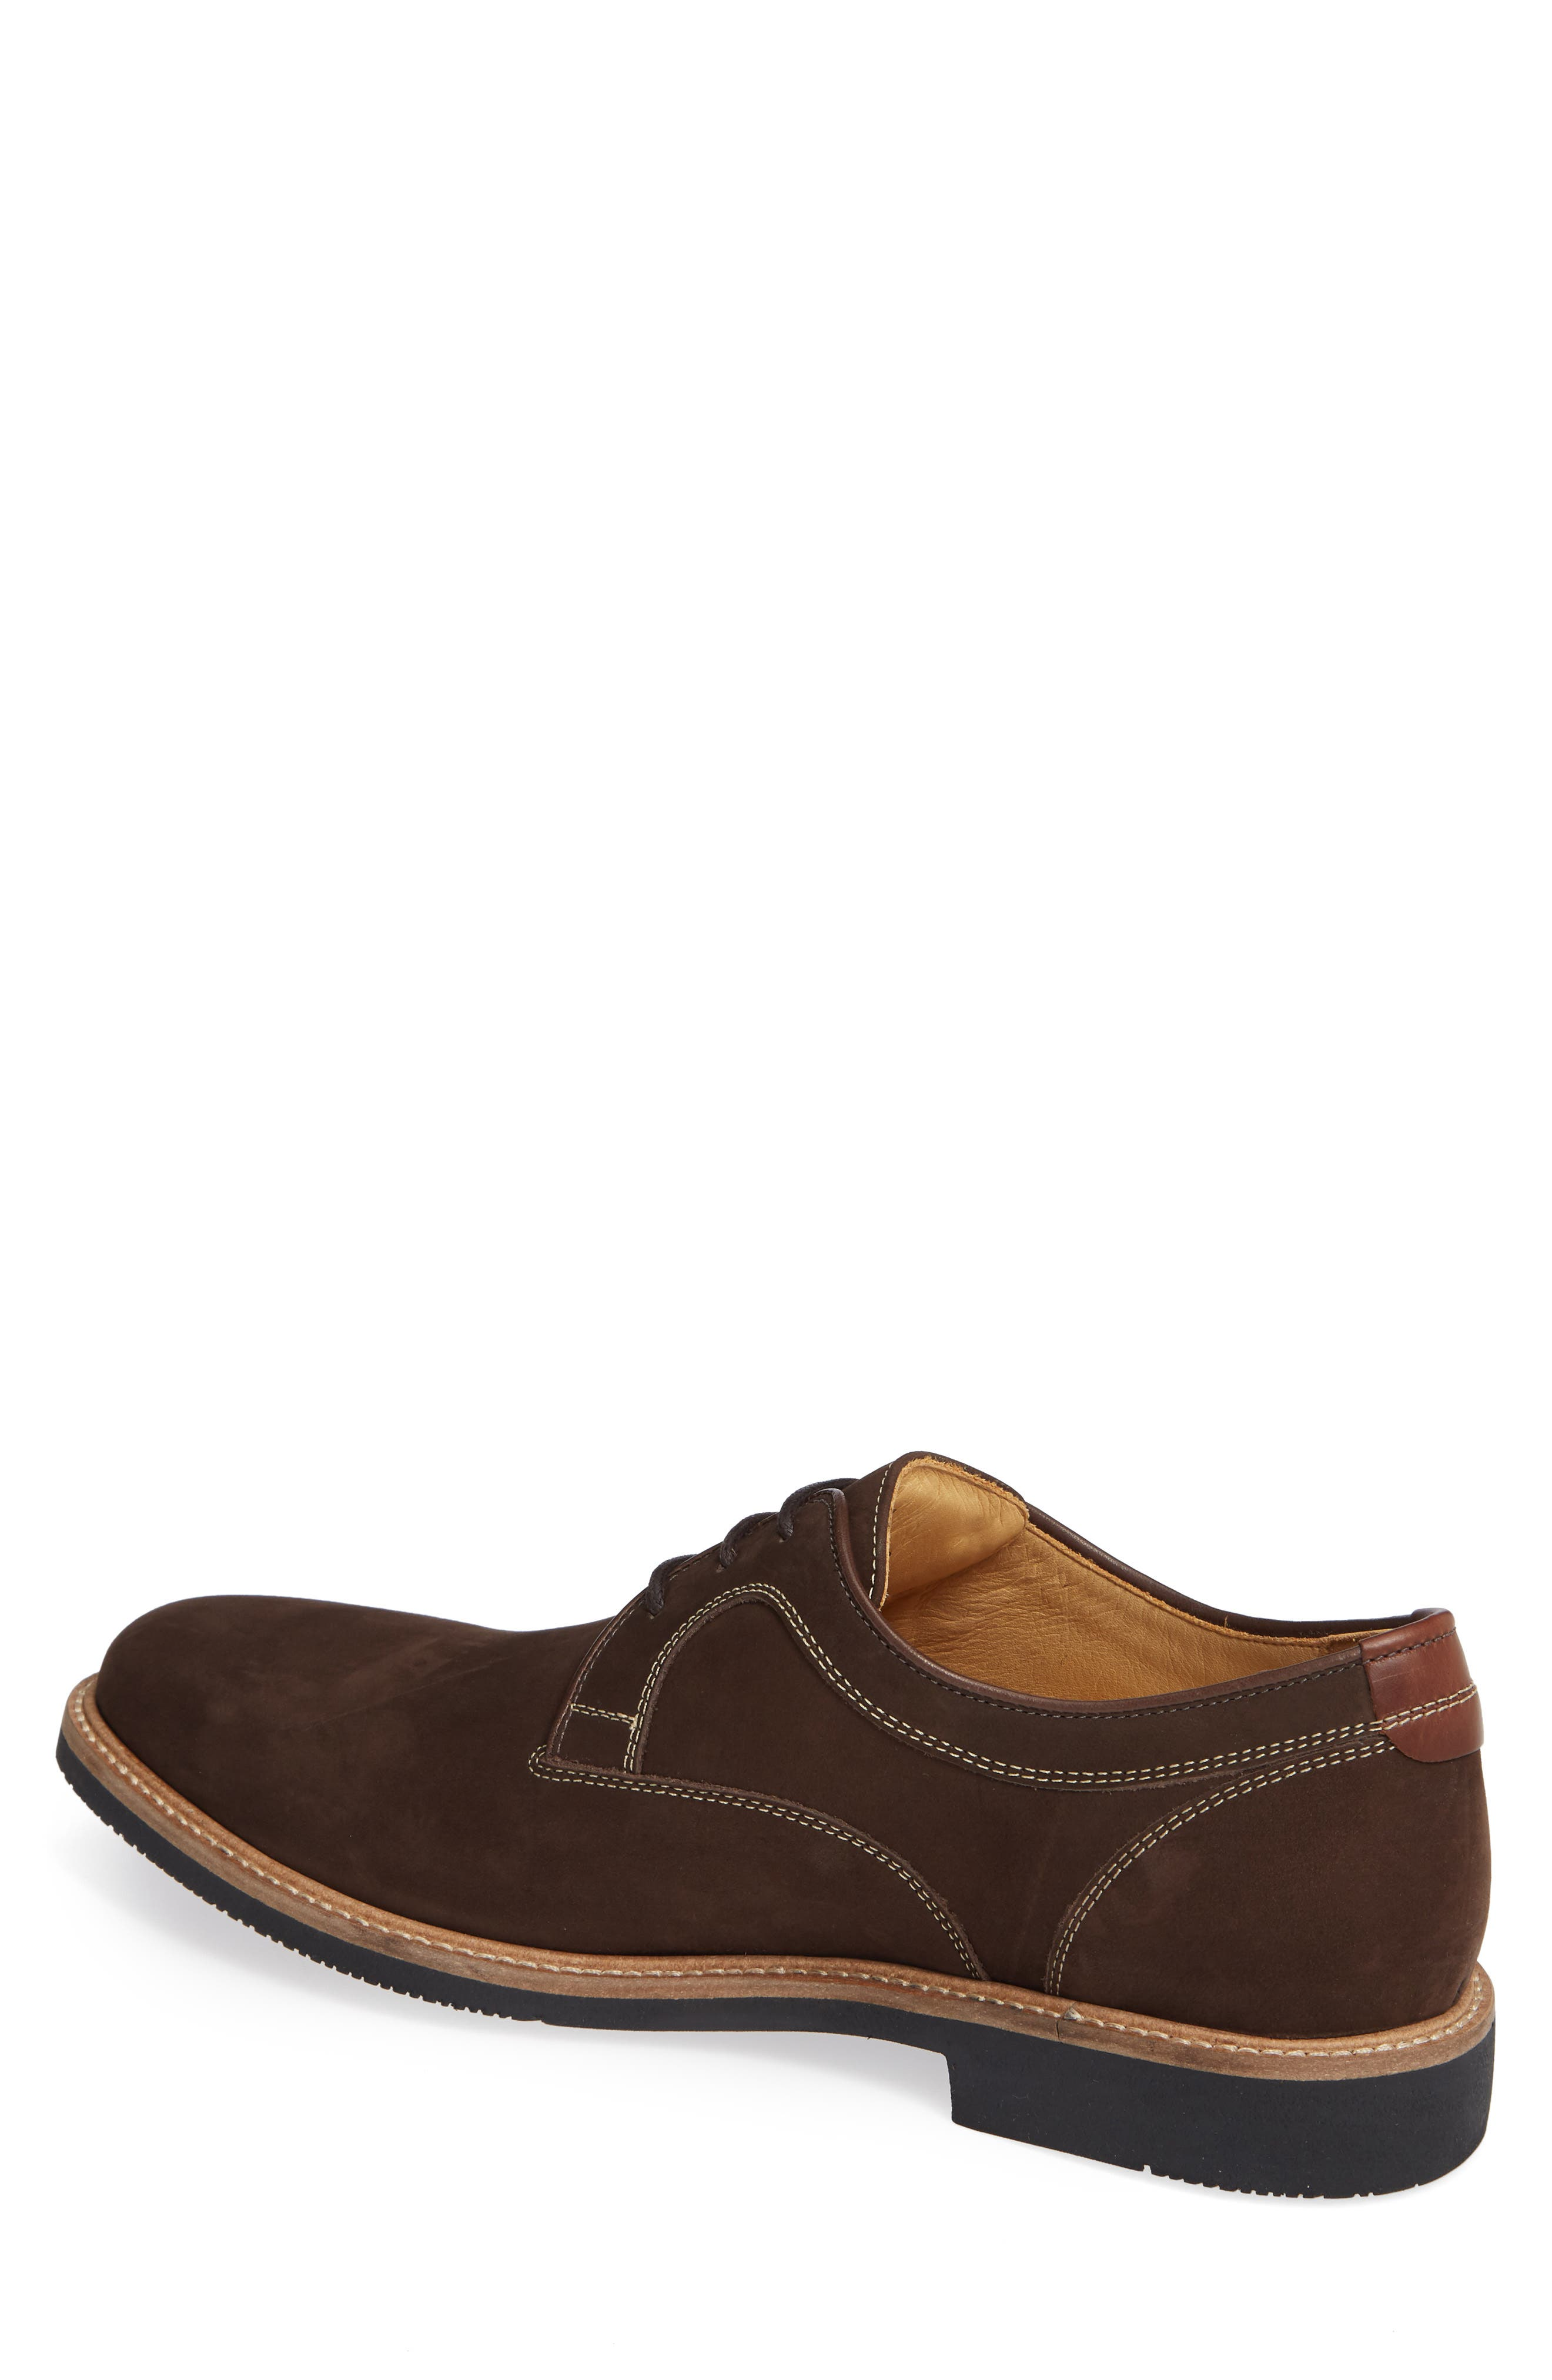 JOHNSTON & MURPHY,                             Barlow Plain Toe Derby,                             Alternate thumbnail 2, color,                             CHOCOLATE NUBUCK